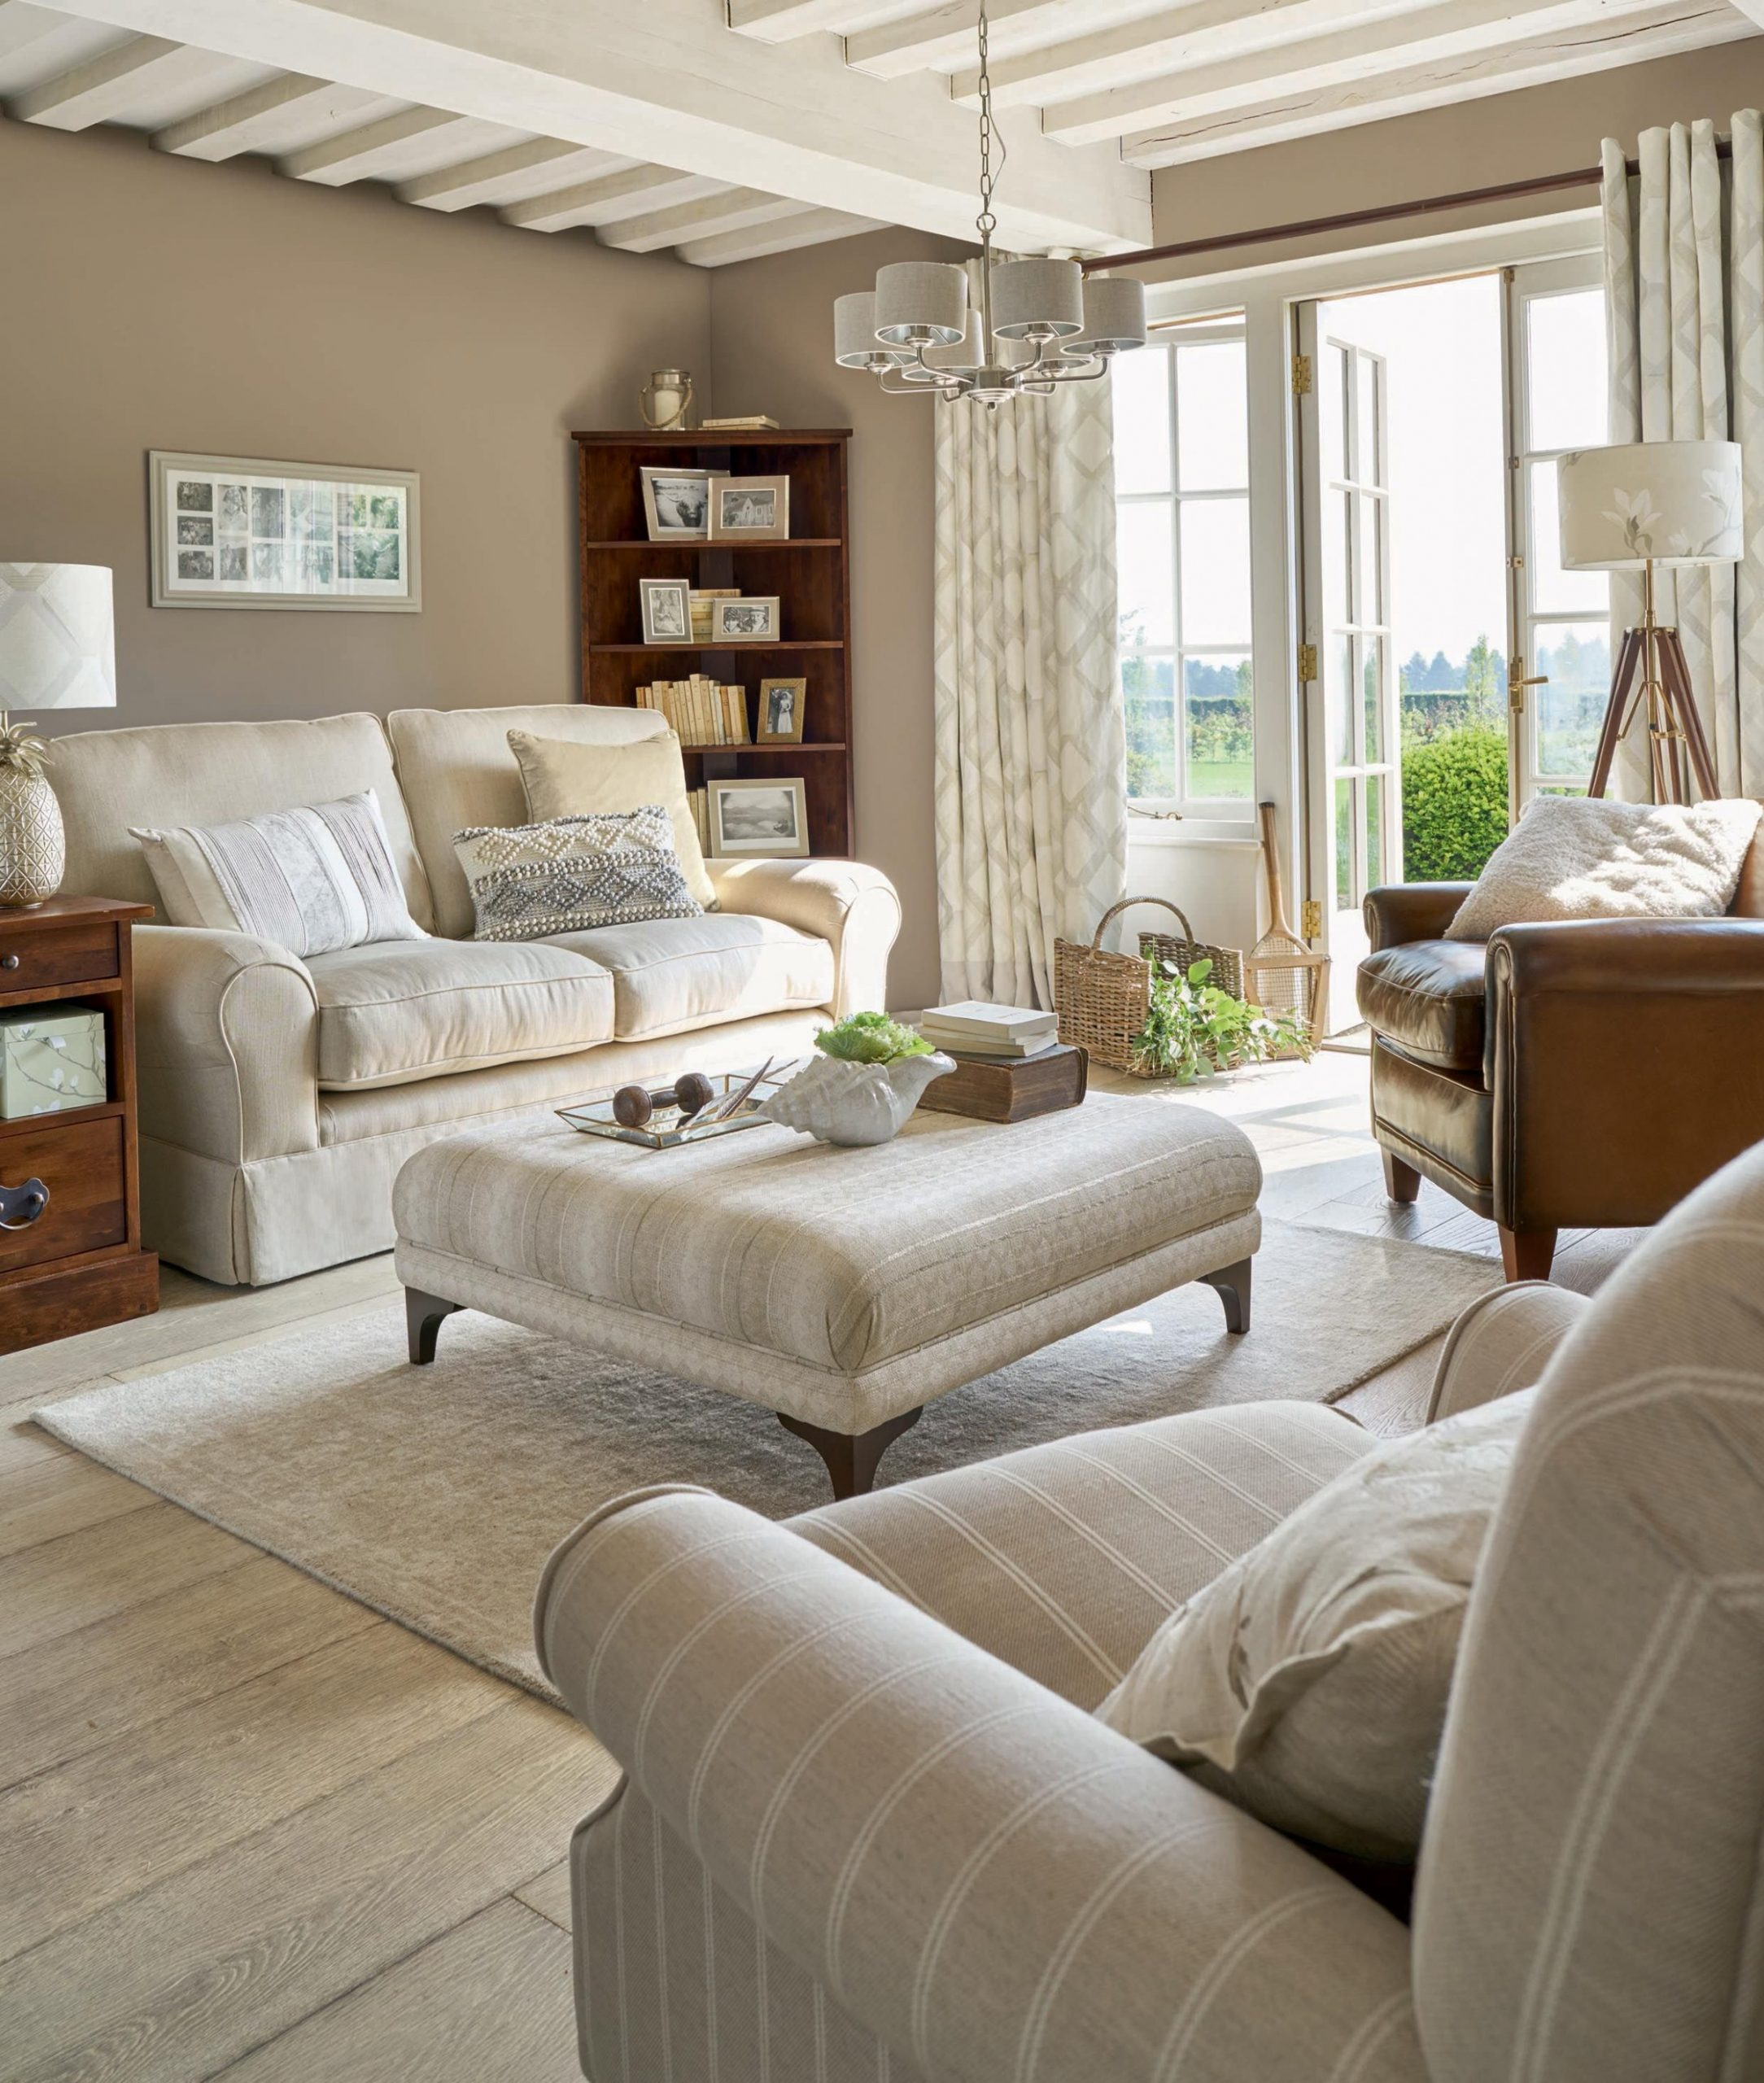 Laura Ashley Natural by Design Collection SS9  Cottage living  - Dining Room Ideas Laura Ashley